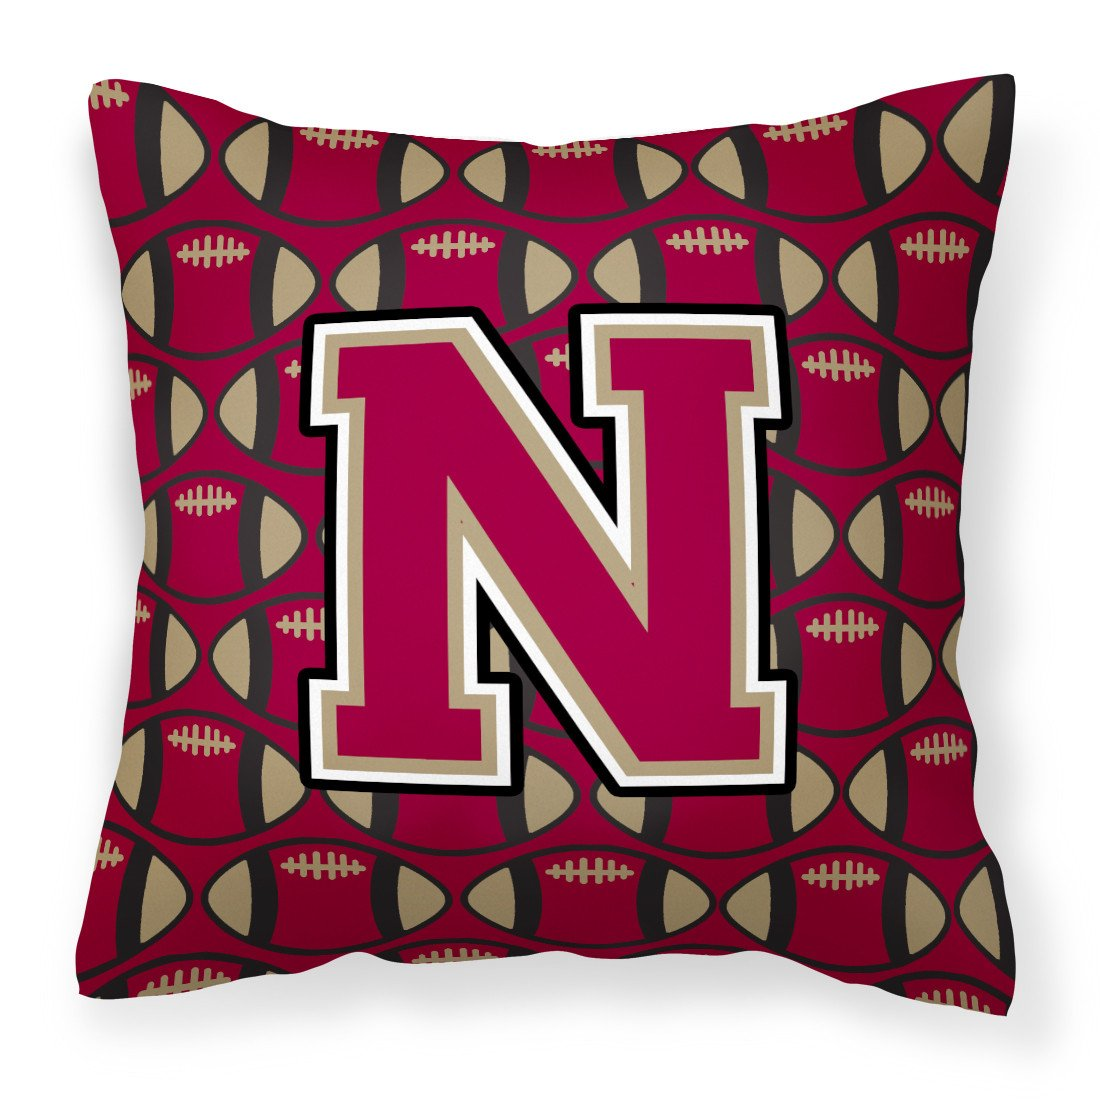 Letter N Football Garnet and Gold Fabric Decorative Pillow CJ1078-NPW1414 by Caroline's Treasures